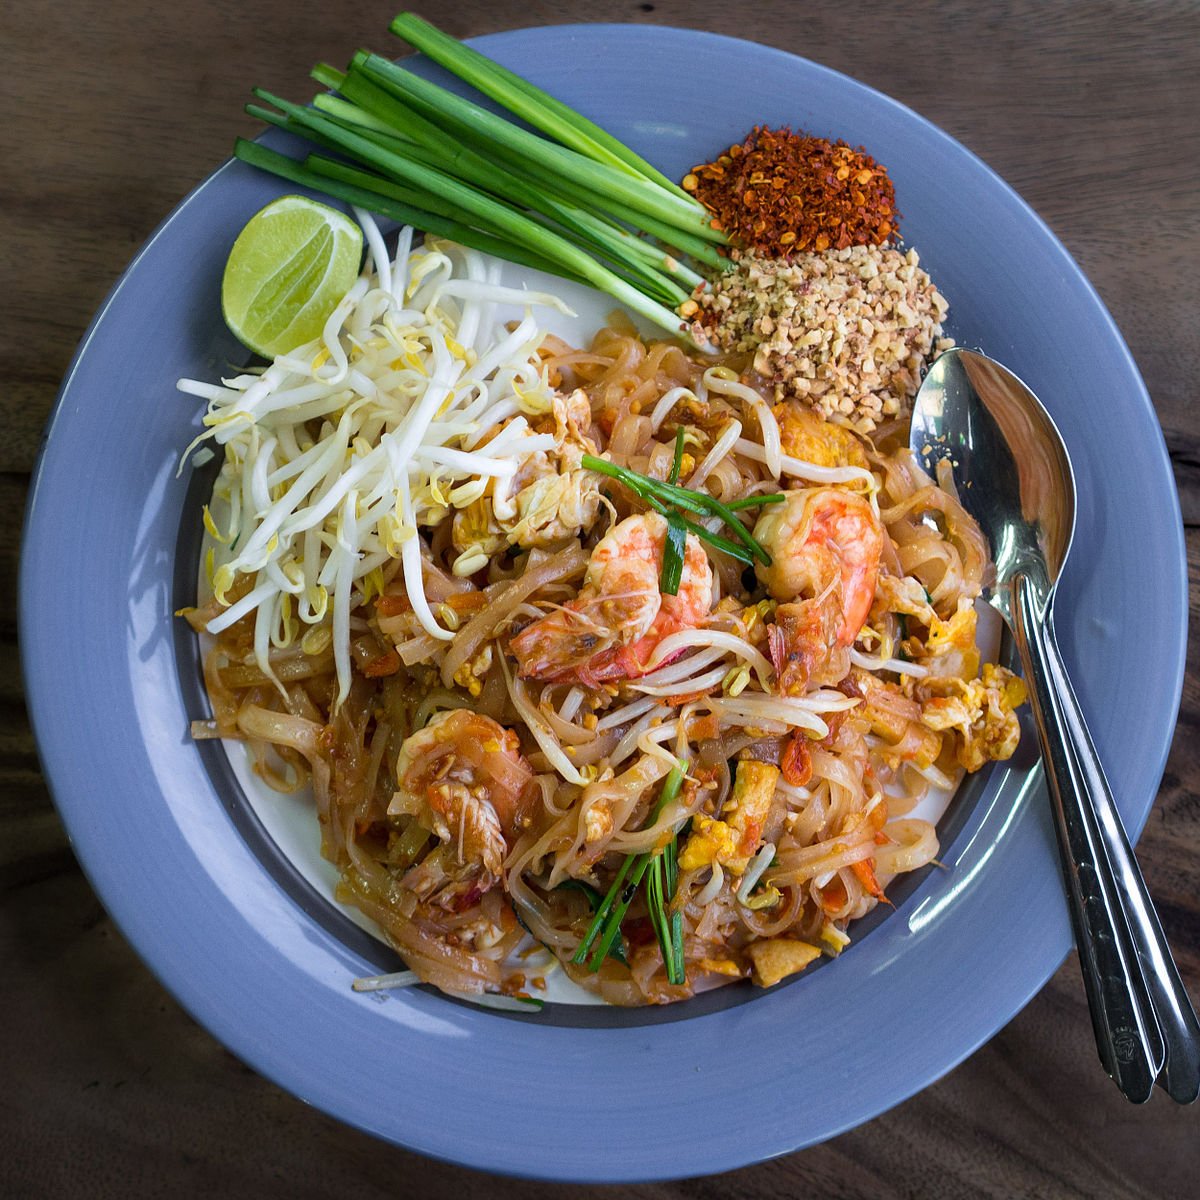 Pad thai wikipedia for About thai cuisine